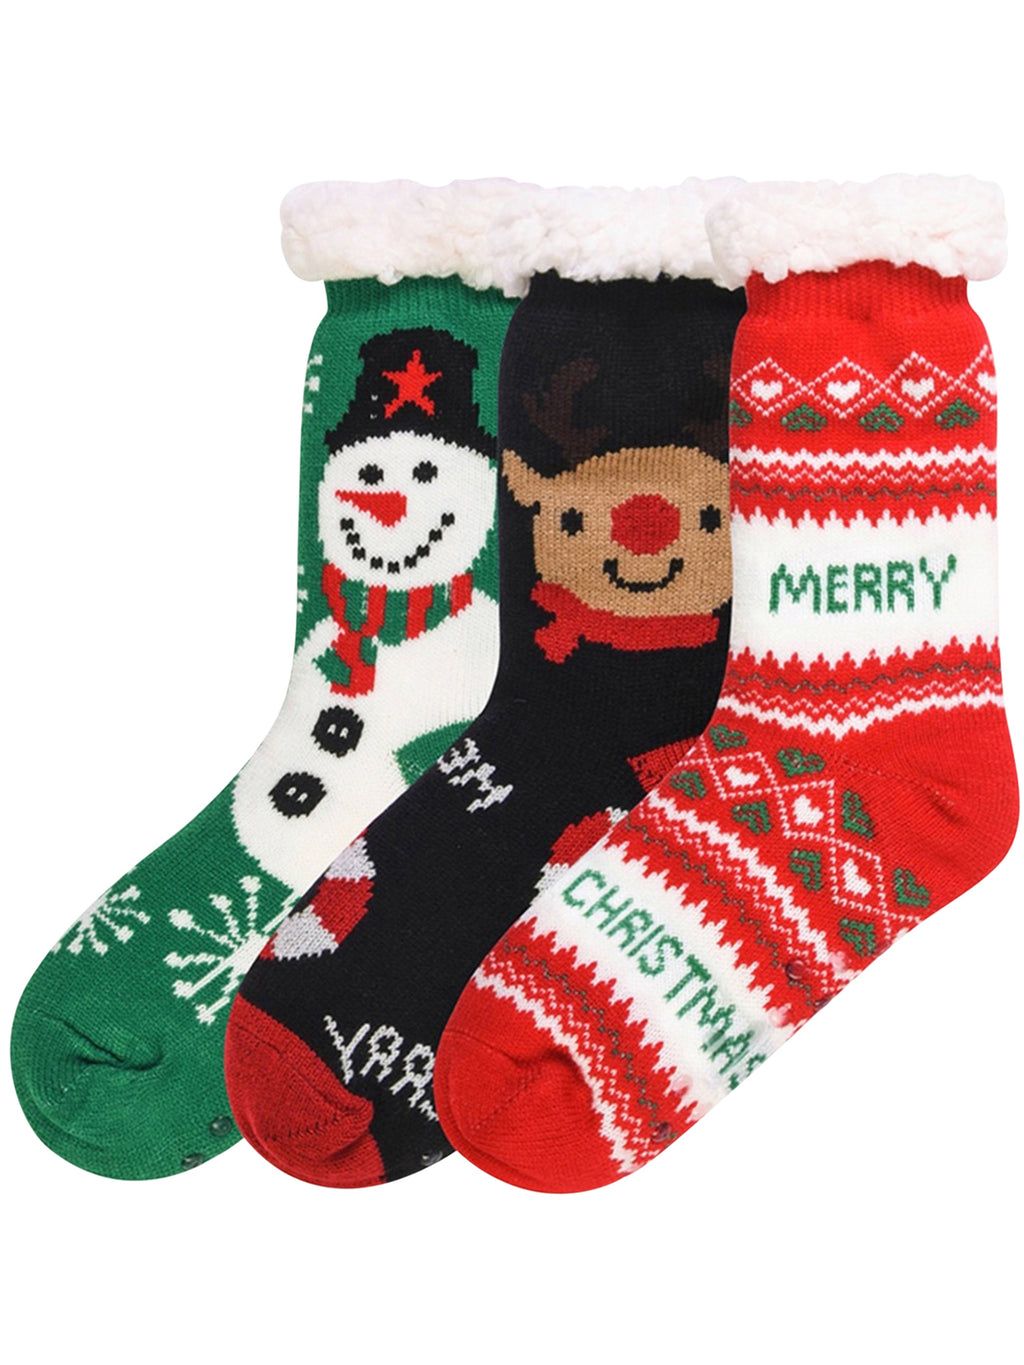 Red Green Black Non-Skid 3-Pack Slipper Socks